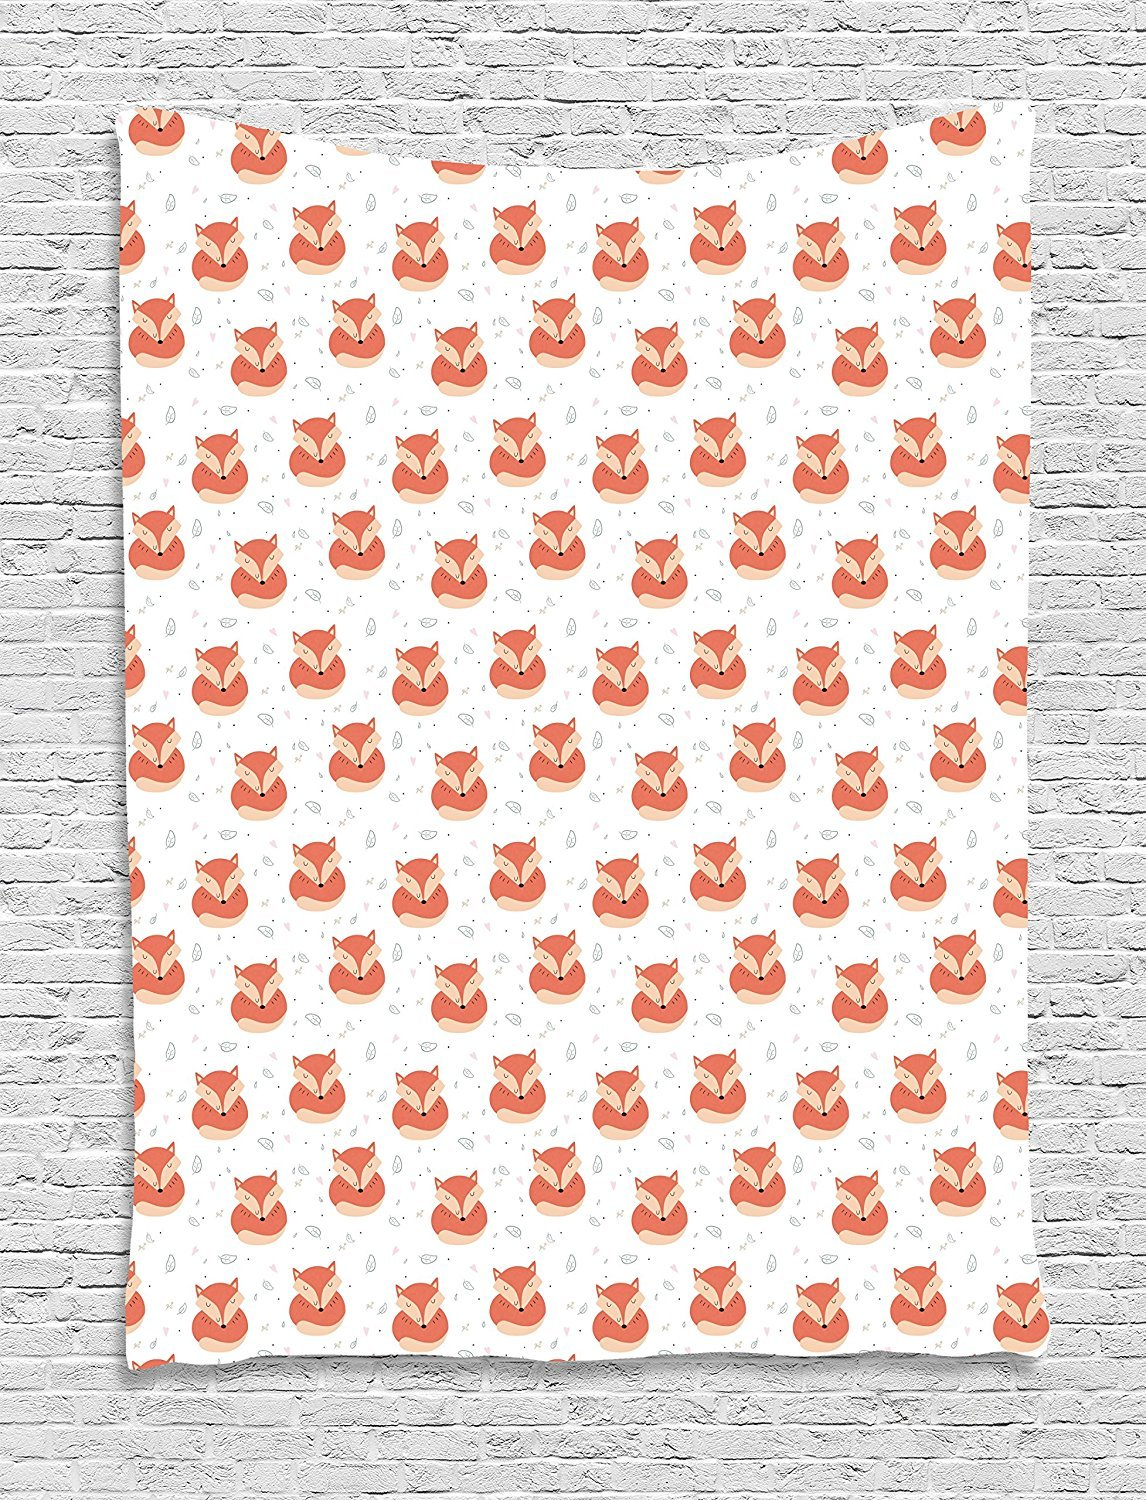 Fox Tapestry, Cute Sleeping Animals Pattern on Heats and Leaves Background Vintage Inspirations, Wall Hanging for Bedroom Living Room Dorm, 60 W X 80 L Inches, Coral Beige